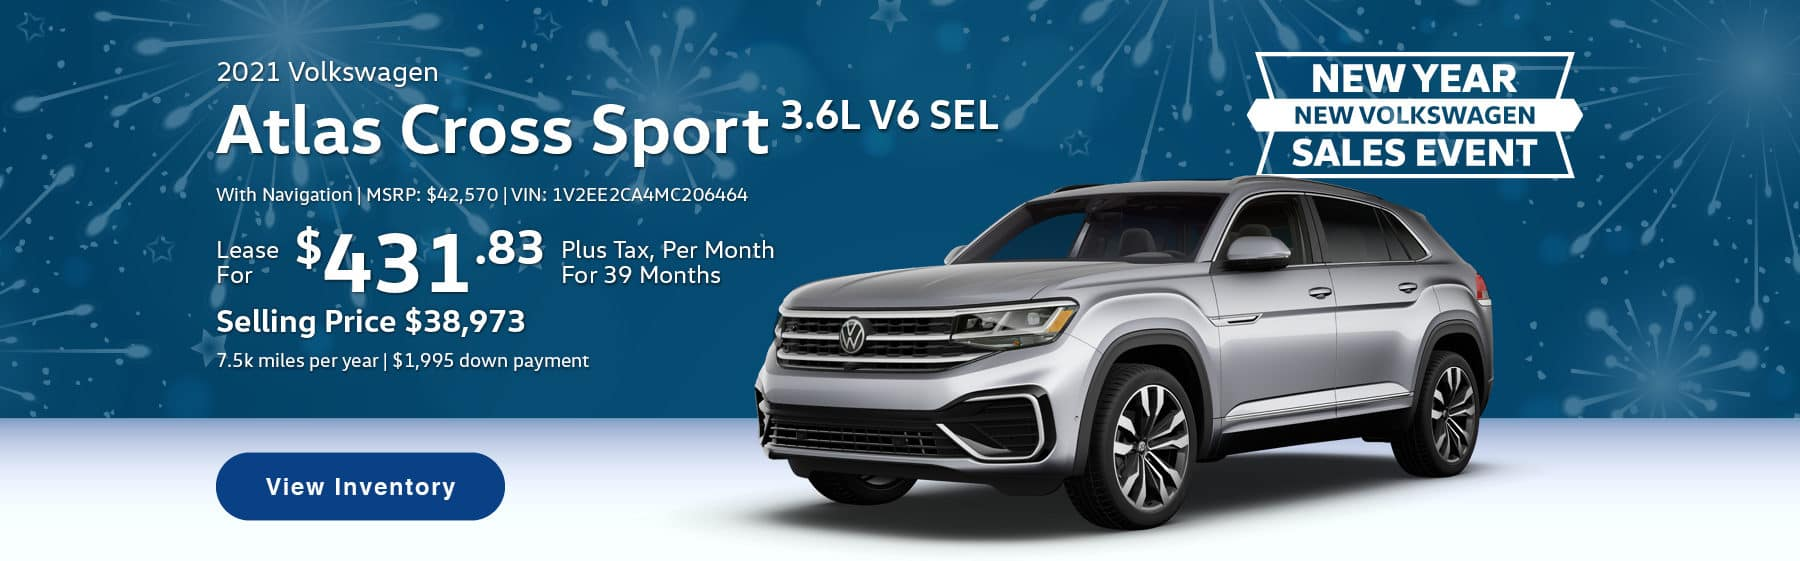 Lease the 2021 Atlas Cross Sport 3.6L V6 SEL With Navigation for $431.83 per month, plus tax for 39 months. Selling price is $38,973. 7,500 miles per year. $1,995 down payment. $42,570 MSRP. Vin #: 1V2EE2CA4MC206464.